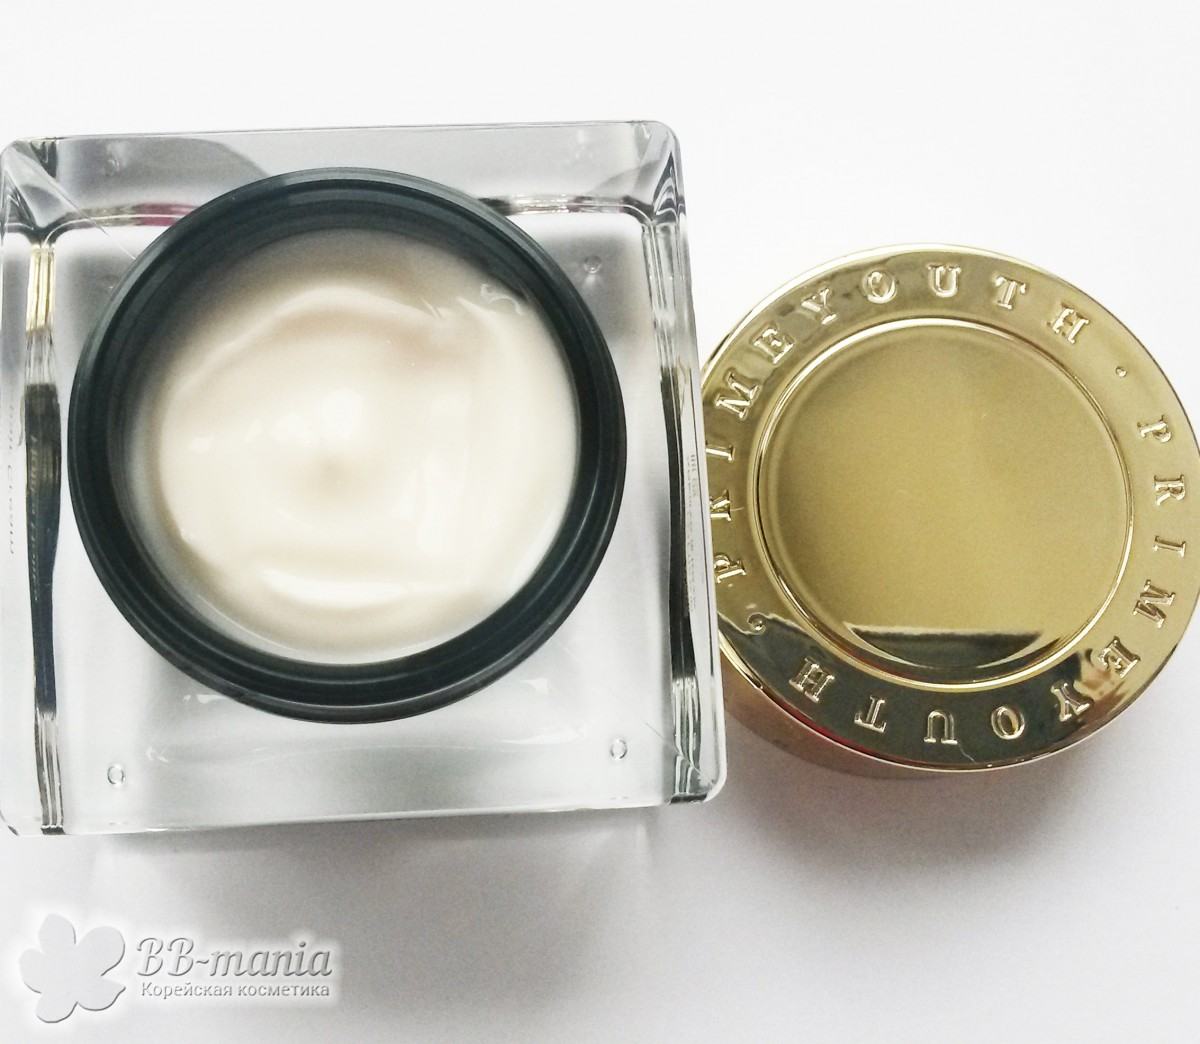 Prime Youth Black Snail Repair Cream [Holika Holika]